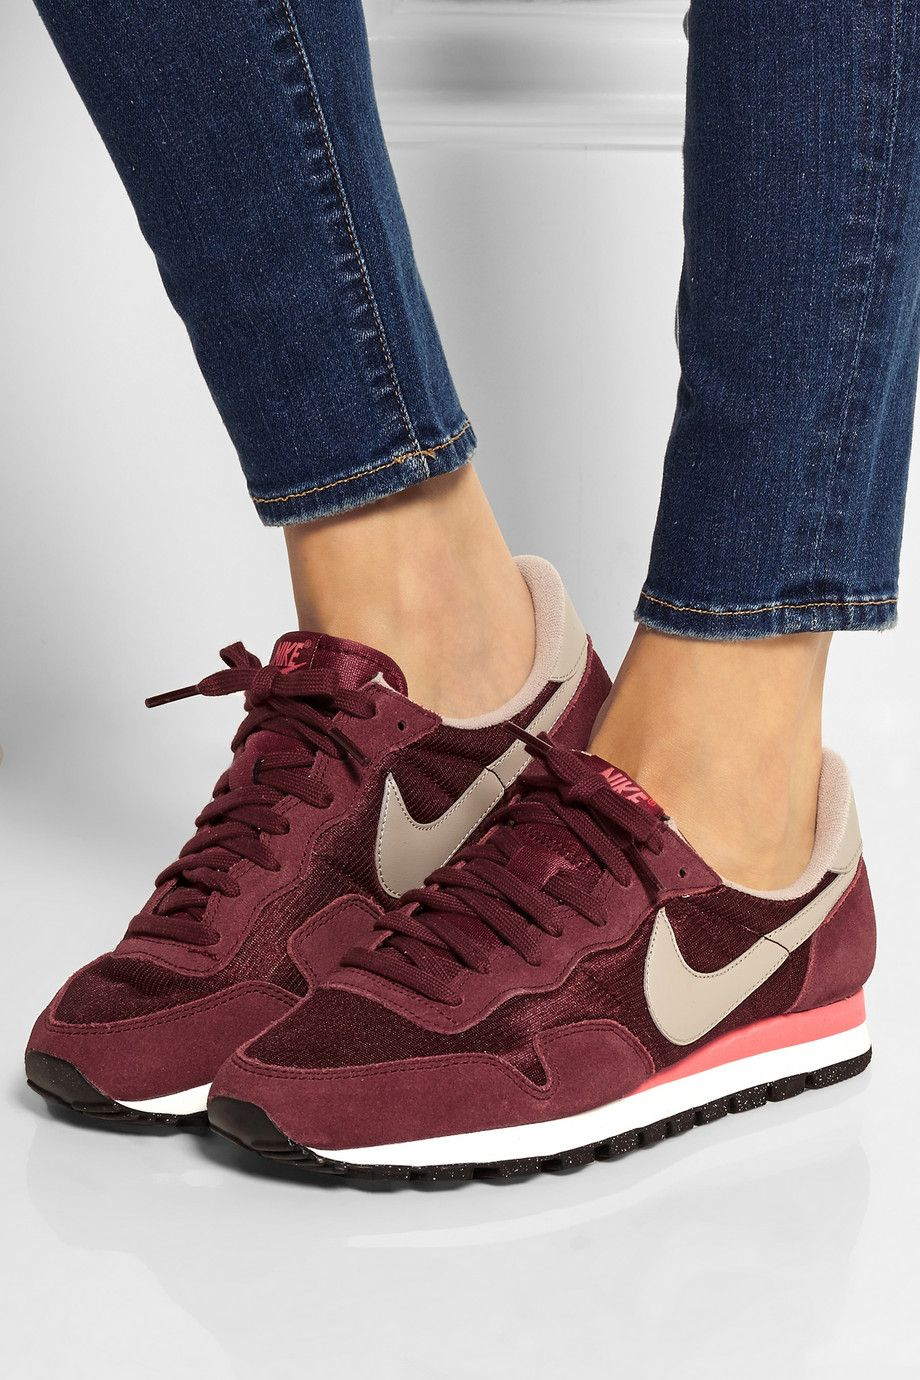 Nike | Air Pegasus 83 suede and mesh sneakers | Emilie ...